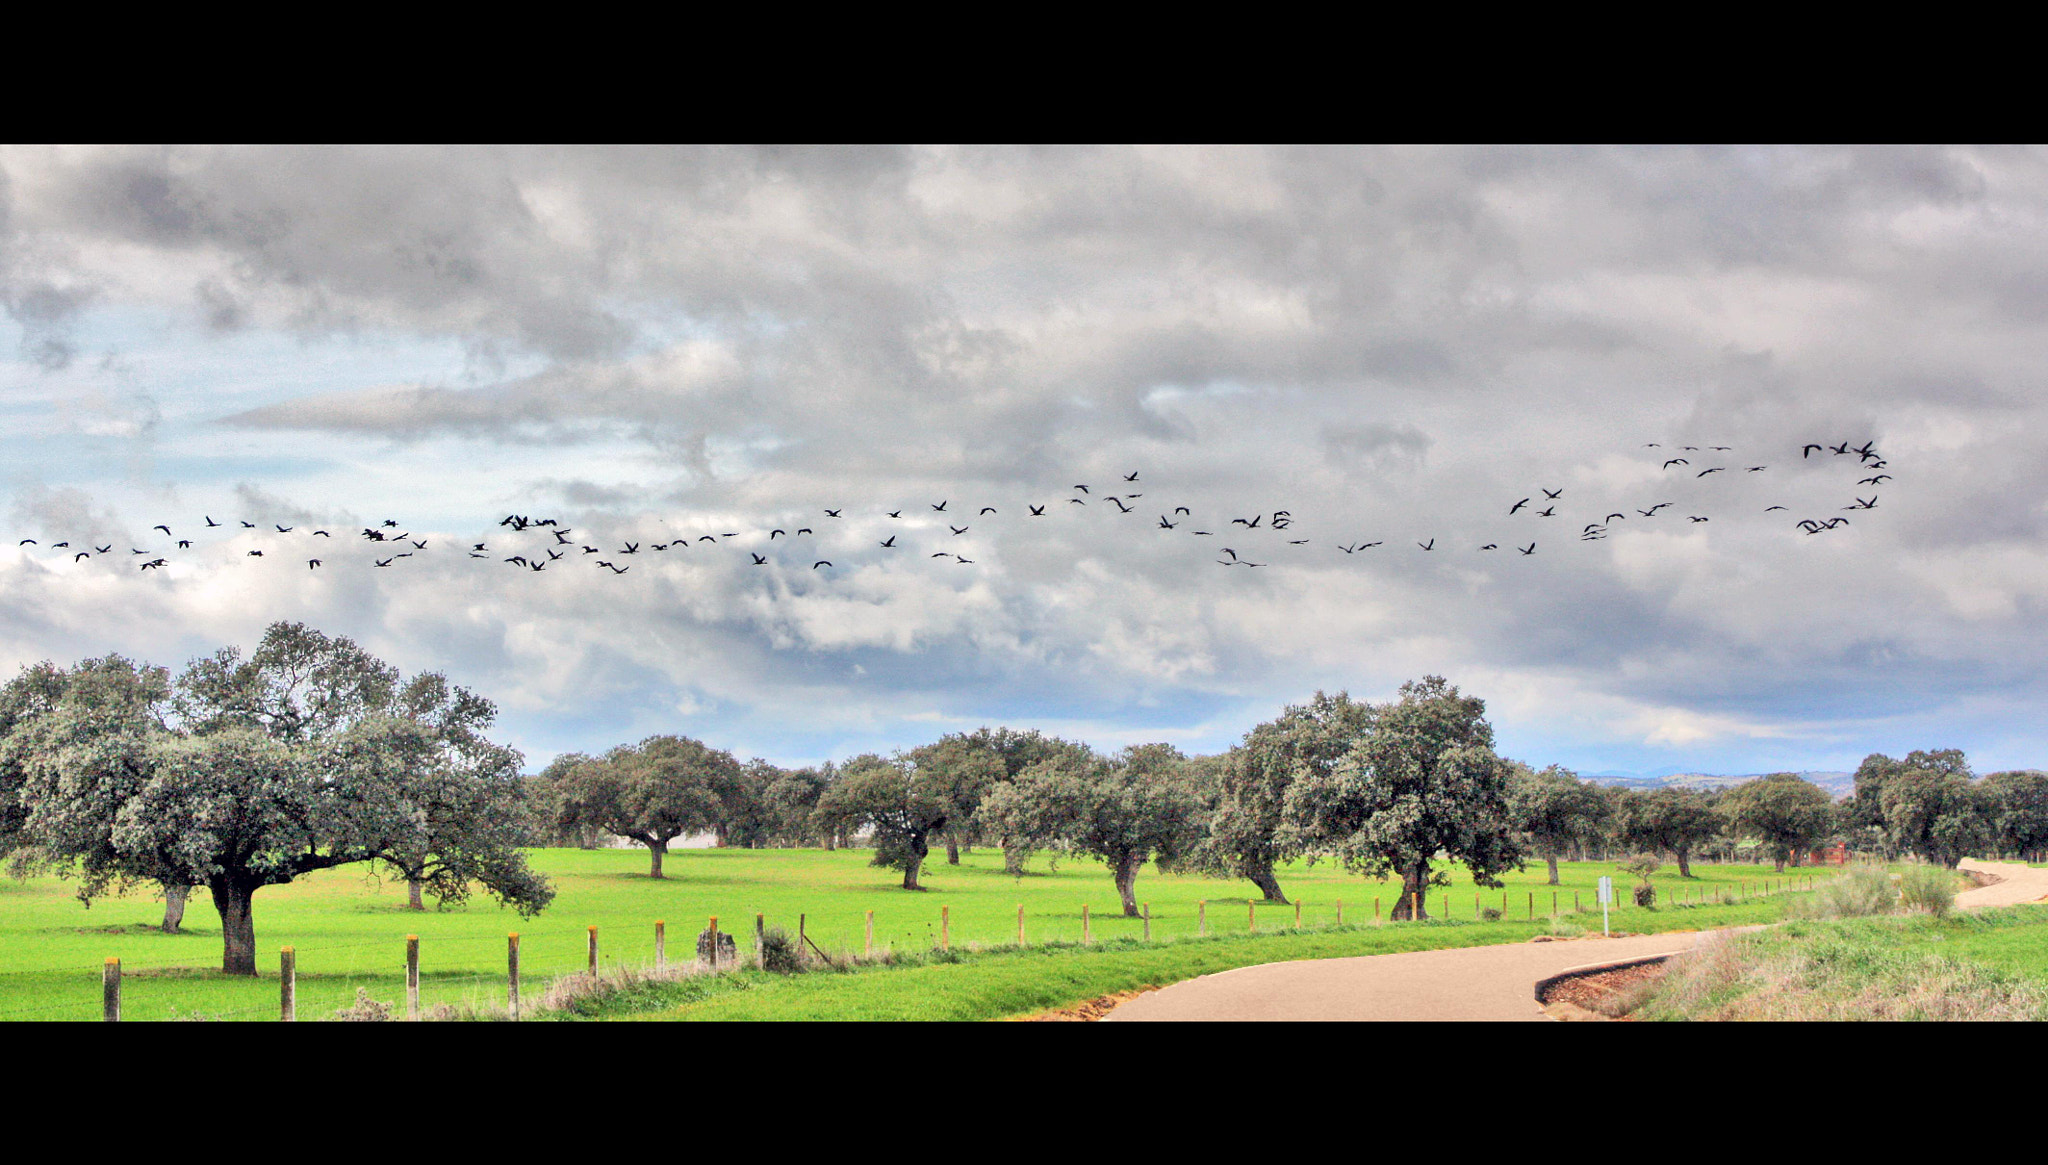 Photograph bird migration by Marichu Rodriguez on 500px